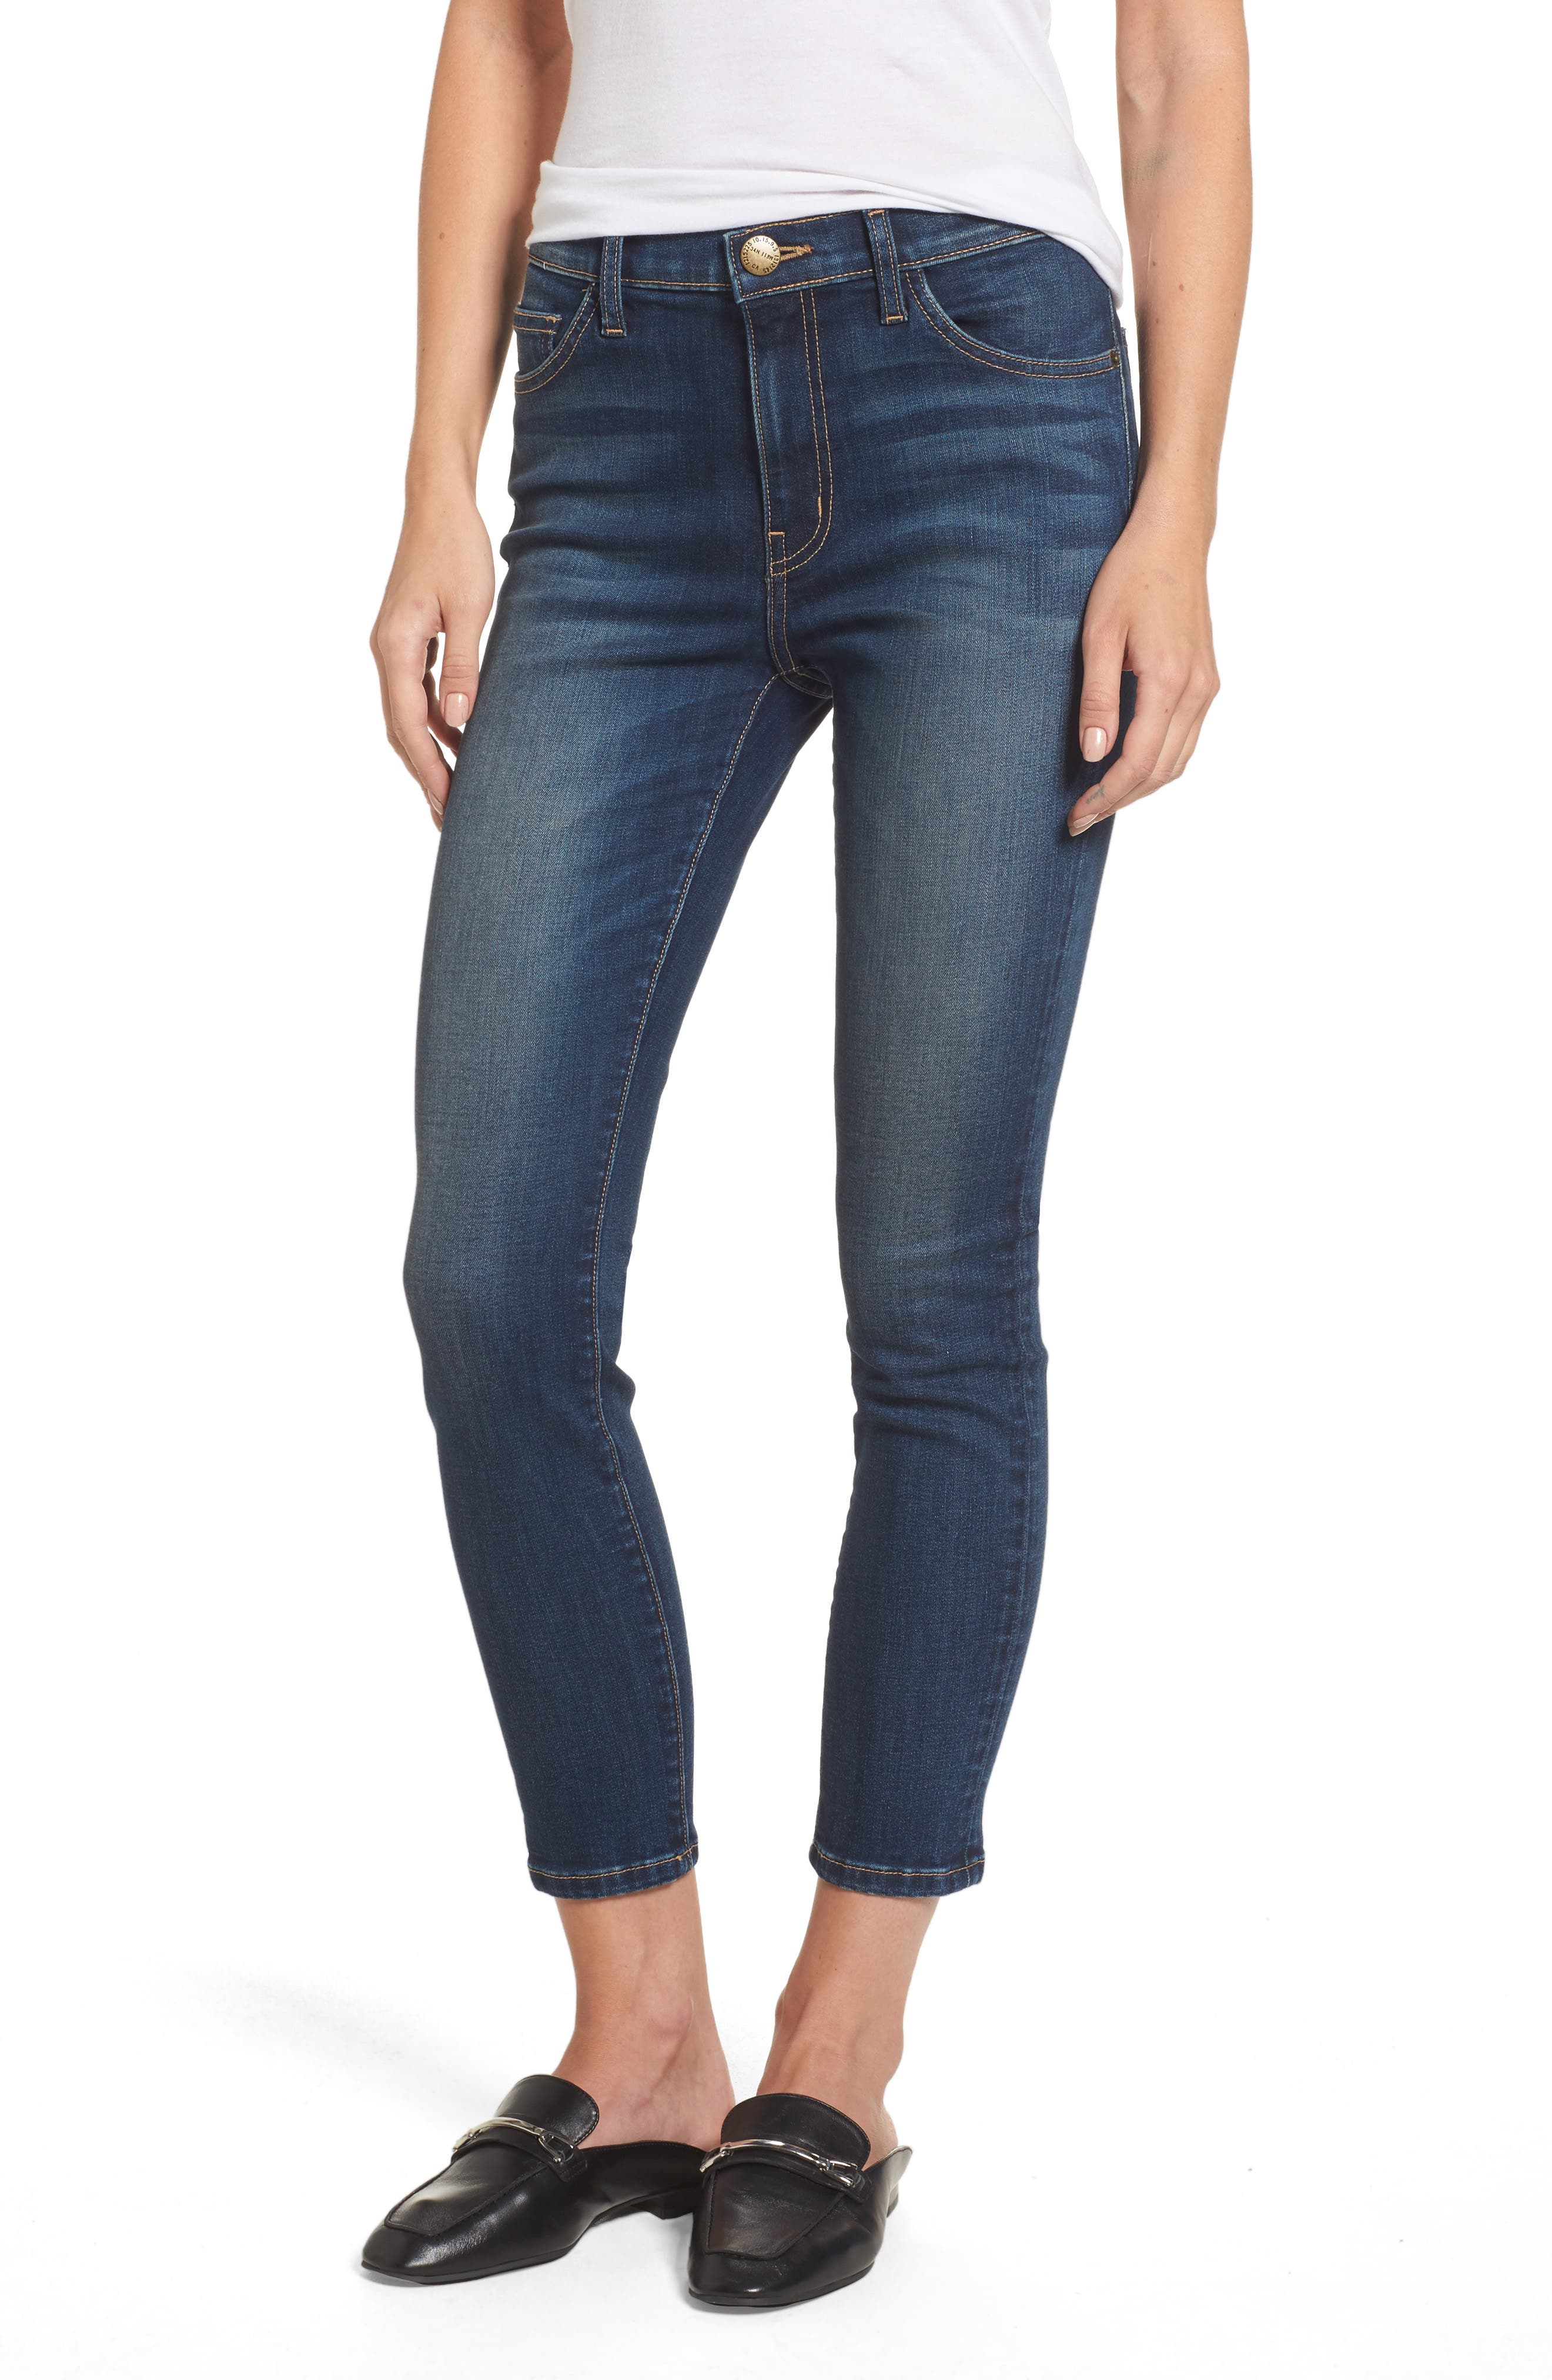 Main Image - Current/Elliott The Stiletto High Waist Ankle Skinny Jeans (Love Found)